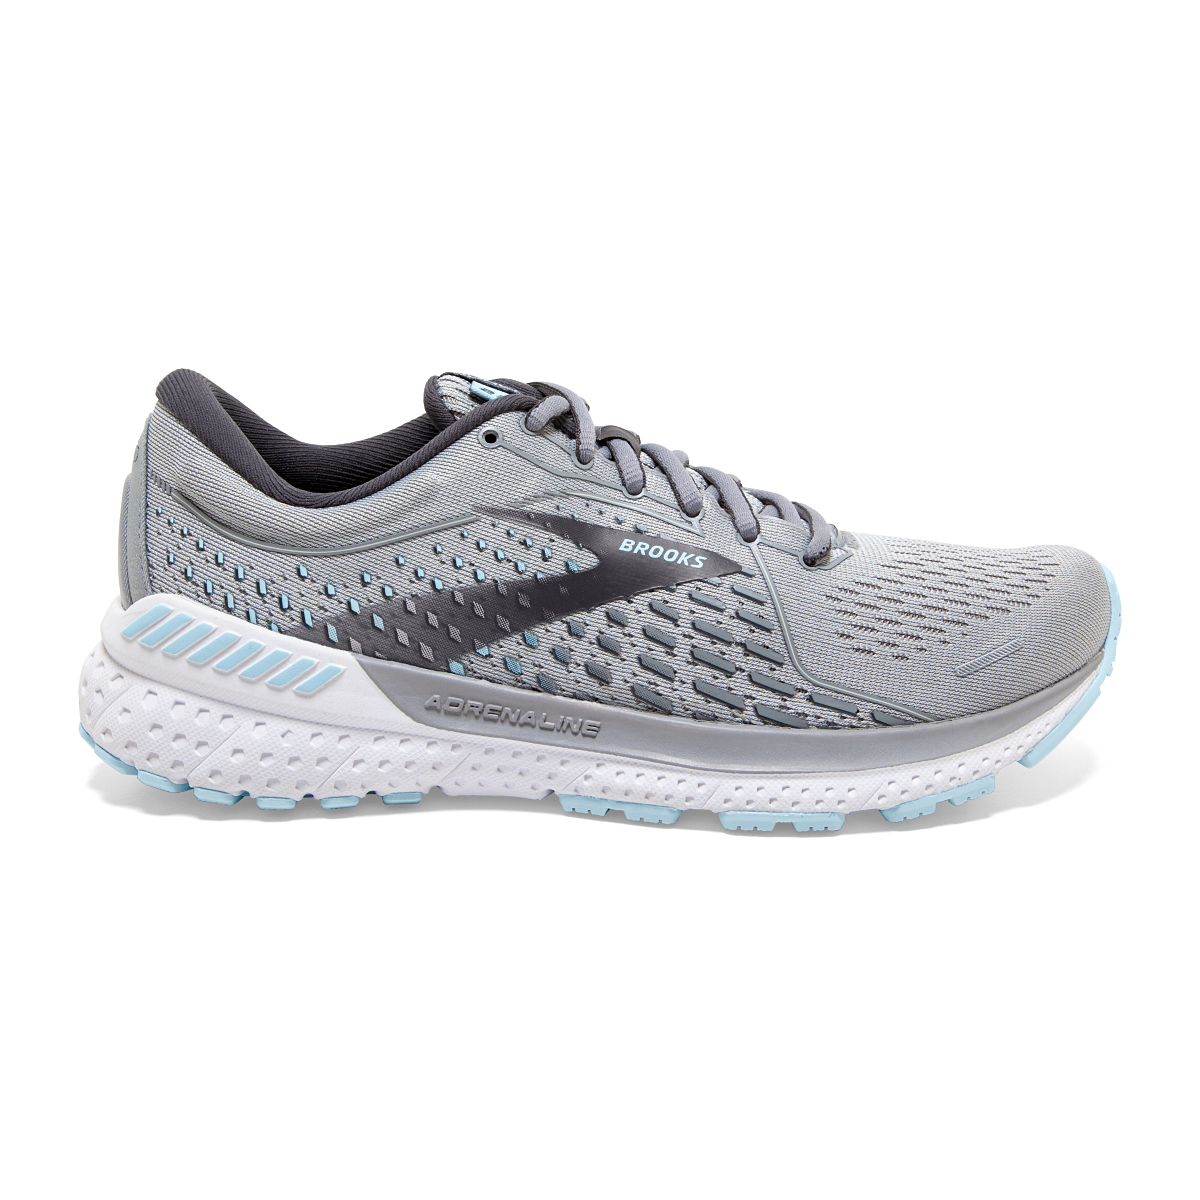 Women's Brooks Adrenaline GTS 21 Running Shoe - Color: Oyster/Alloy/Blue - Size: 5.5 - Width: Regular, Oyster/Alloy/Blue, large, image 1